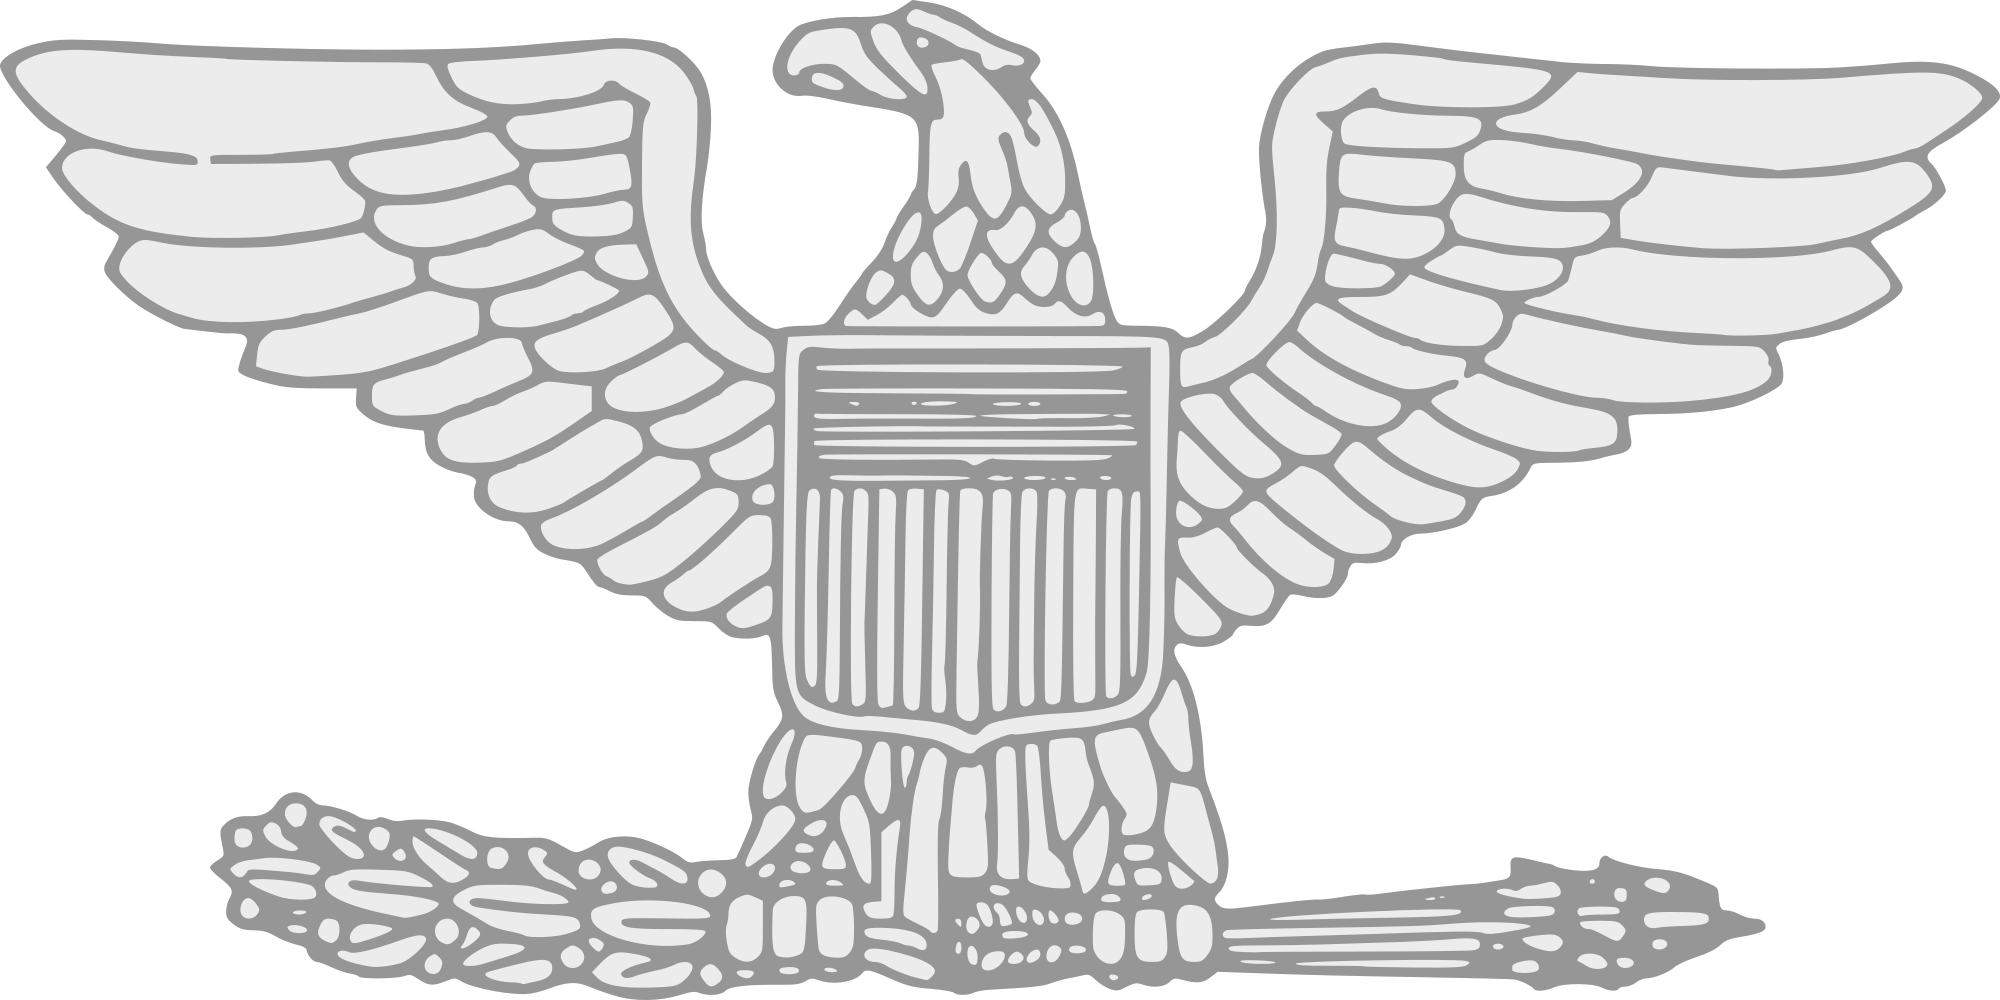 svg stock Usa drawing military. File us o insignia